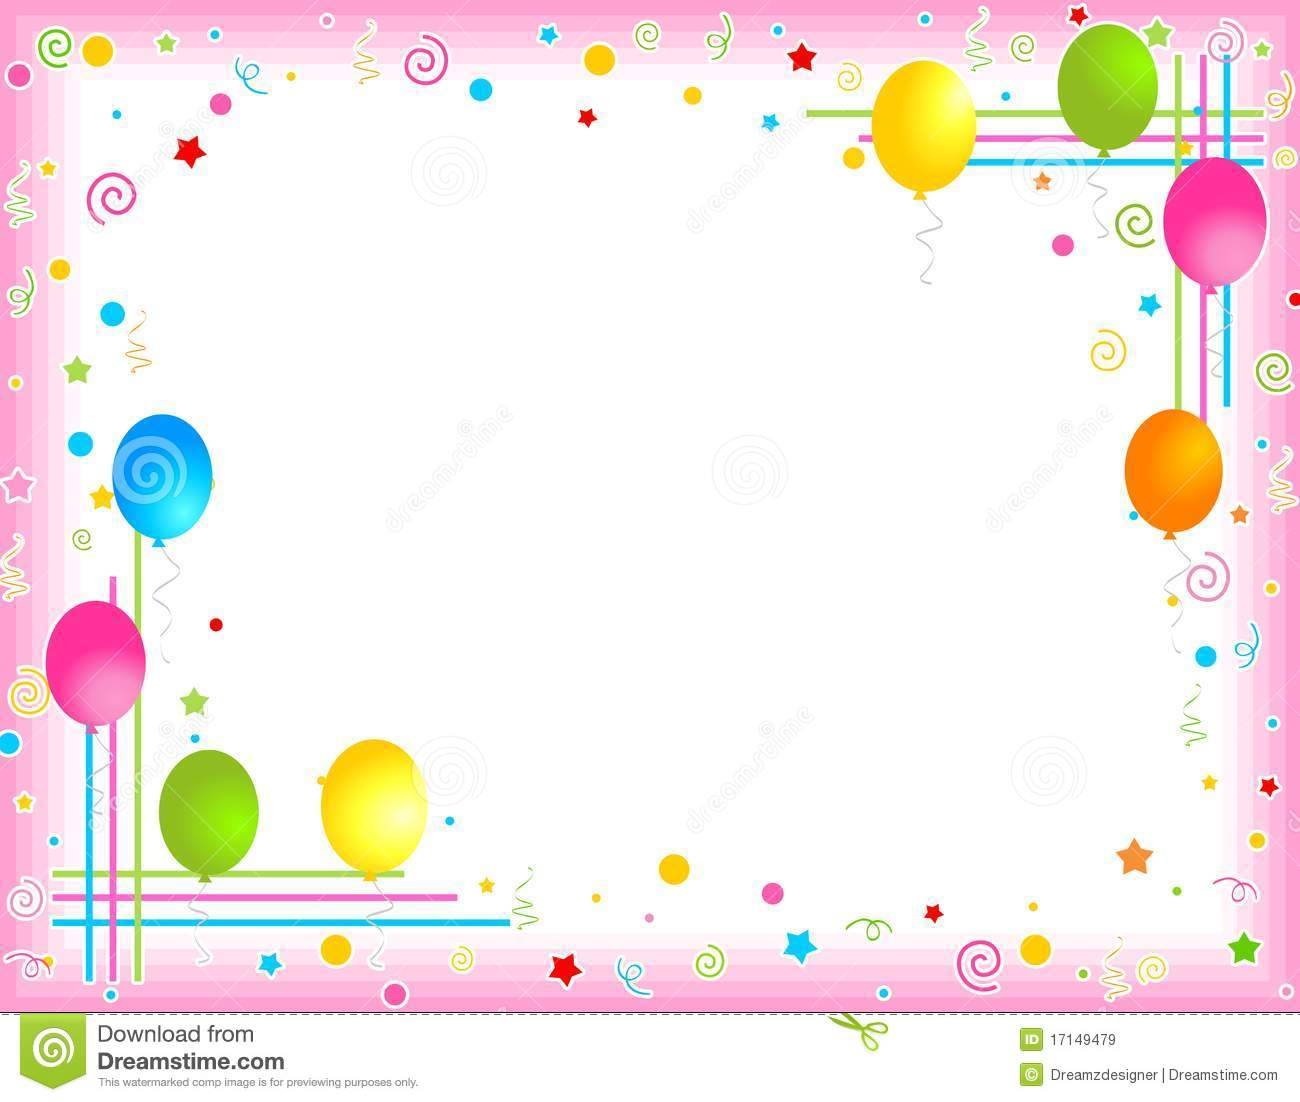 Party borders for invitations. Balloon clipart classy